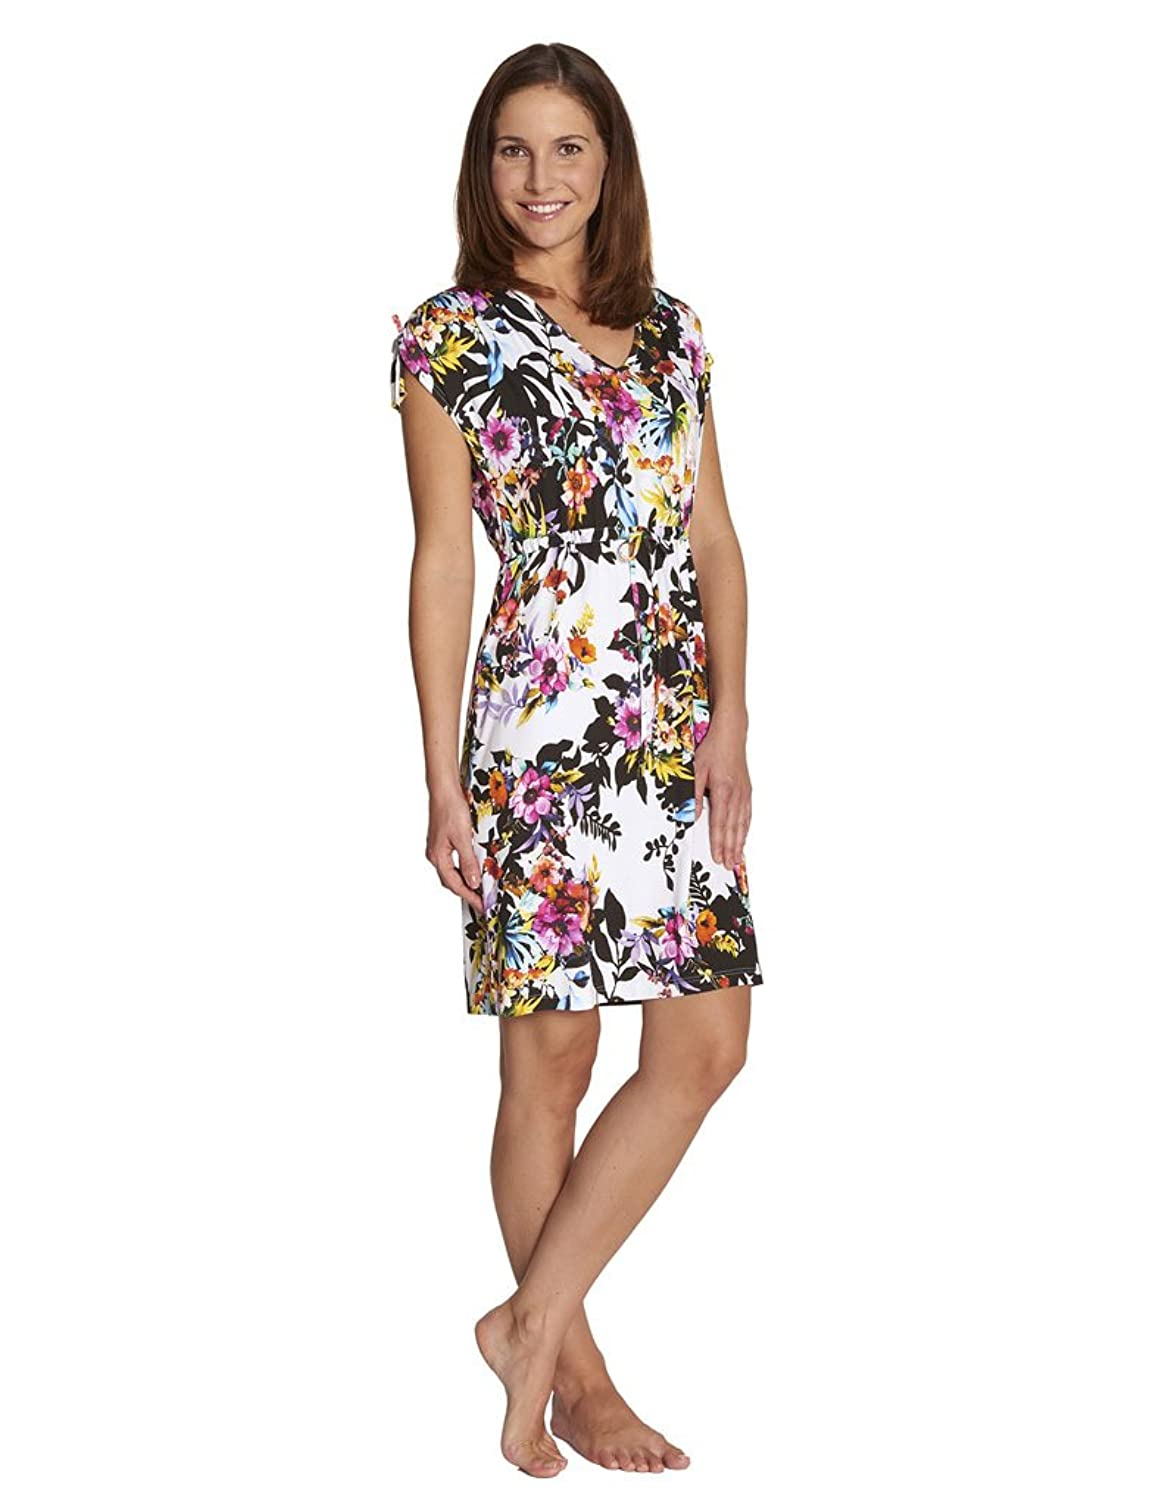 Rosch 1175561-10259 Women's Bright Blue and Pink Floral Beach Dress Cover Up